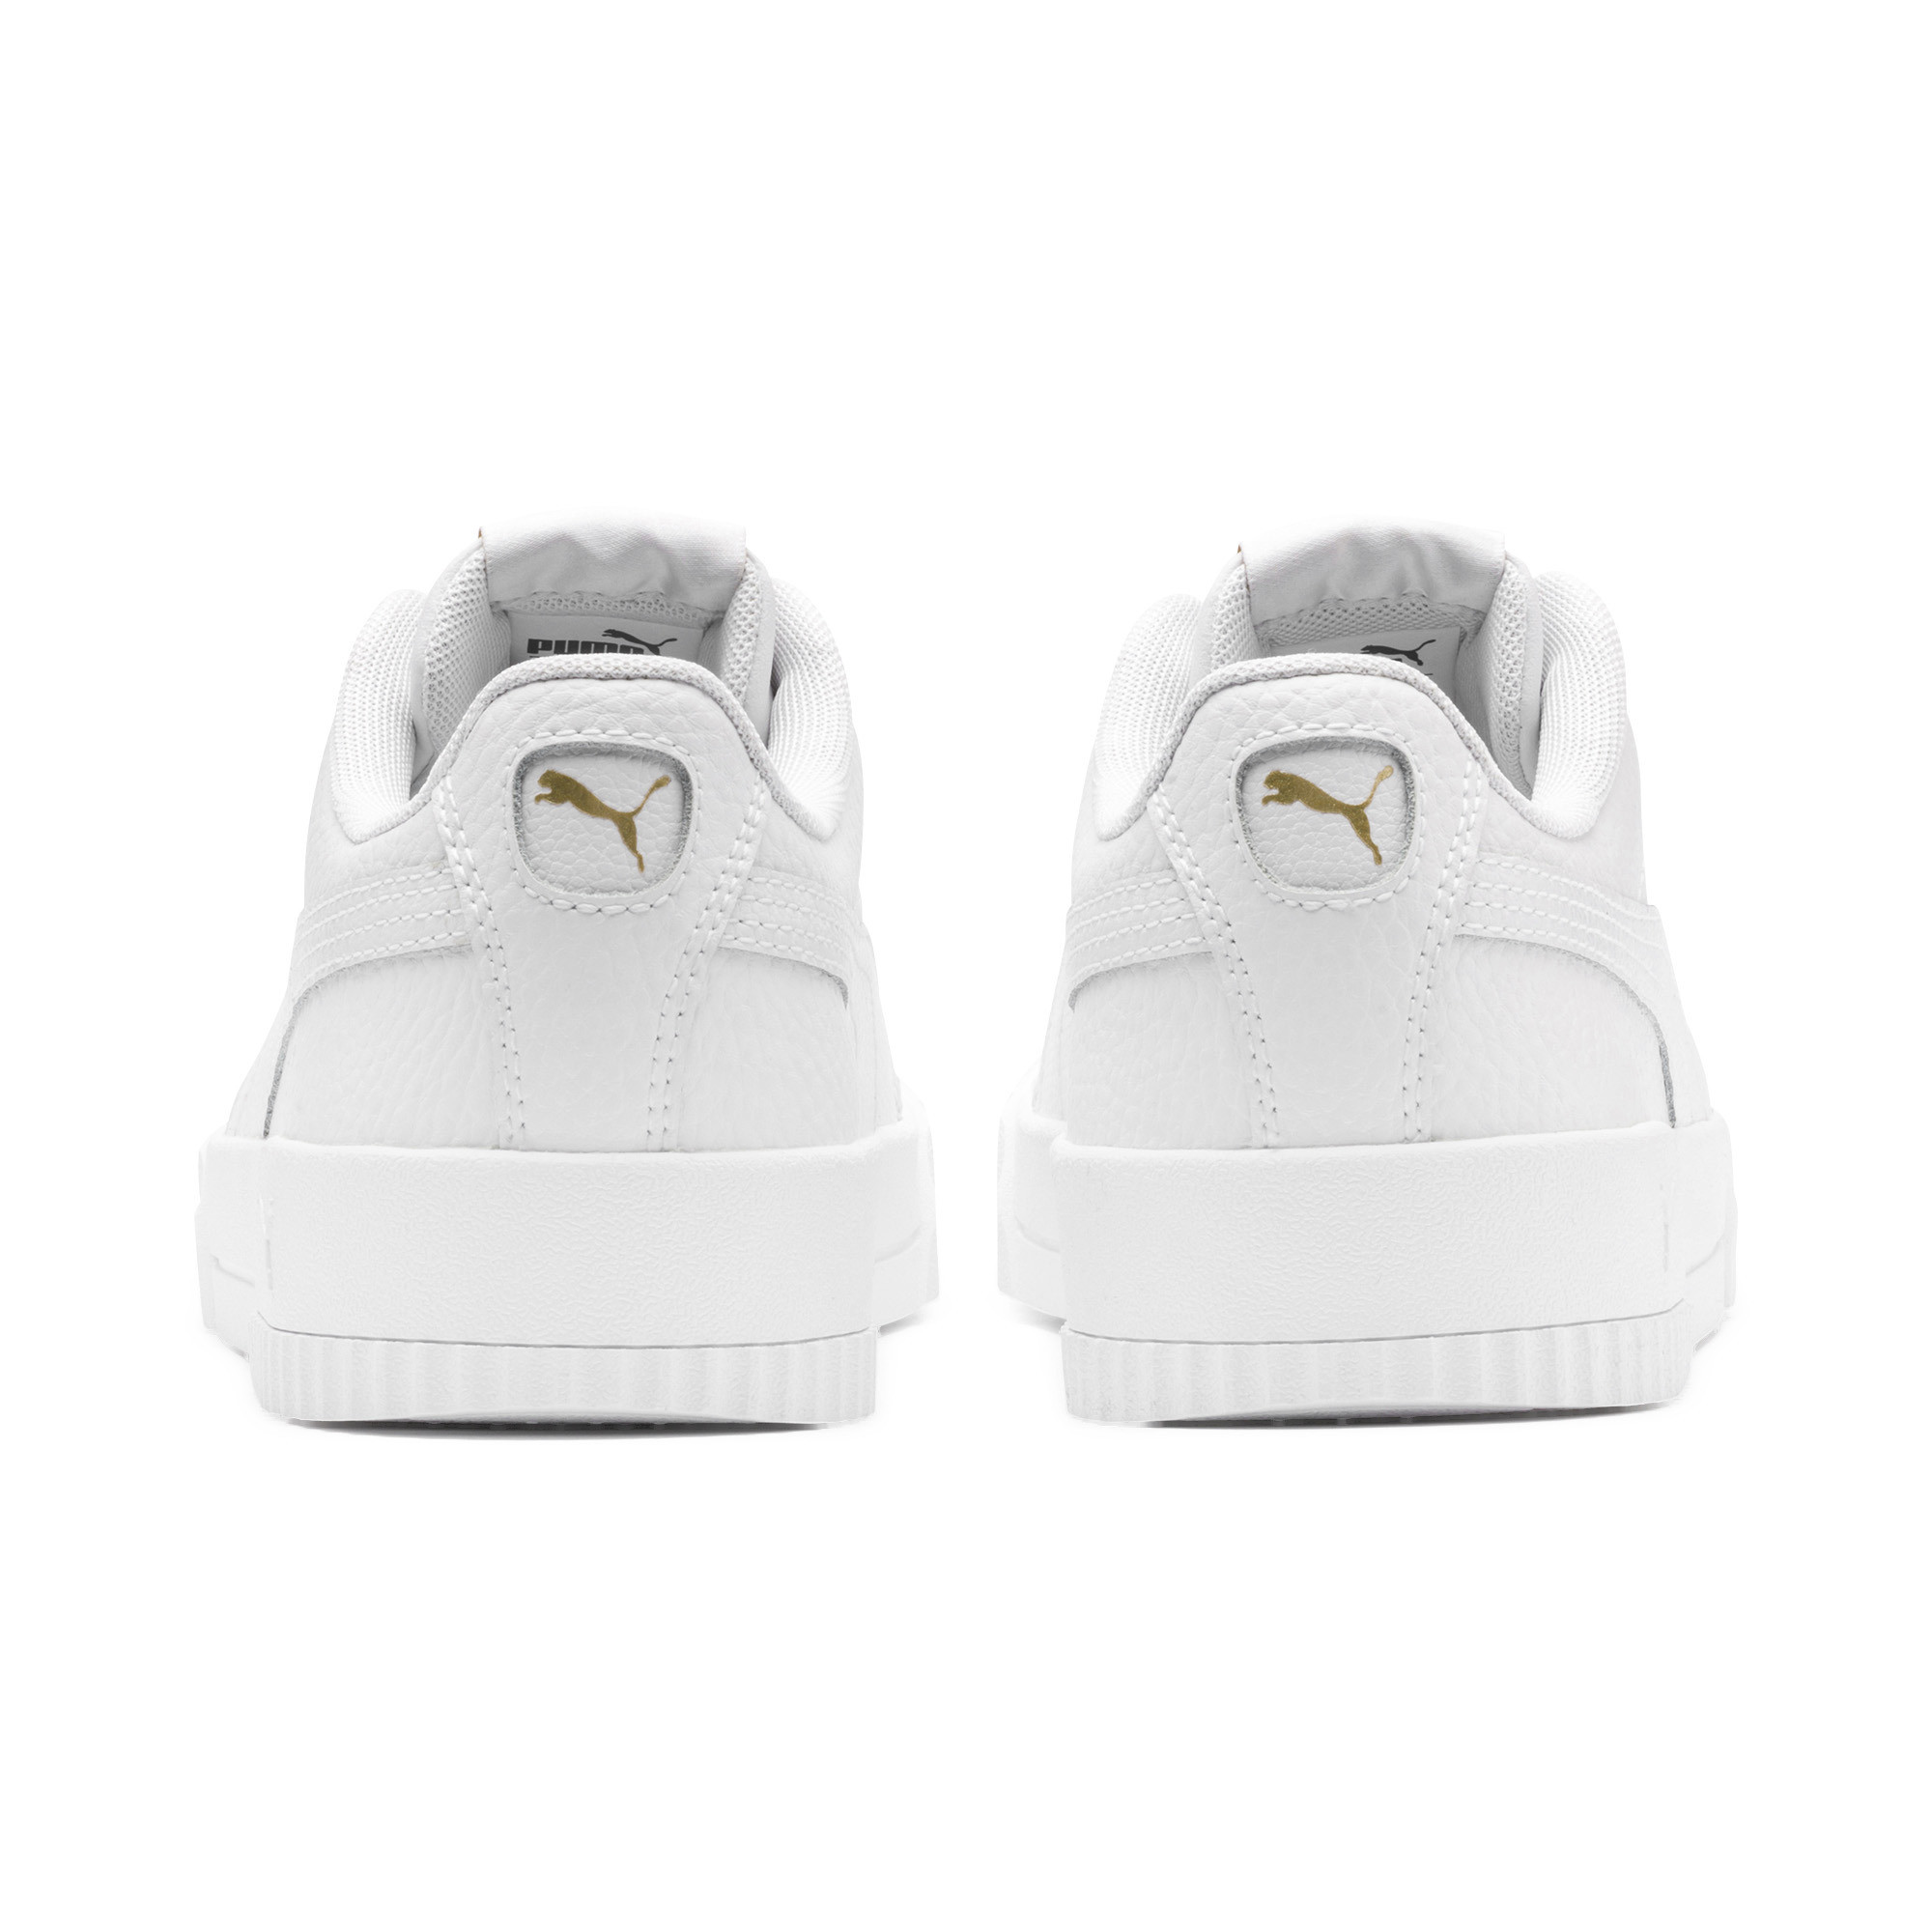 PUMA-Women-039-s-Carina-Lux-Leather-Sneakers thumbnail 3